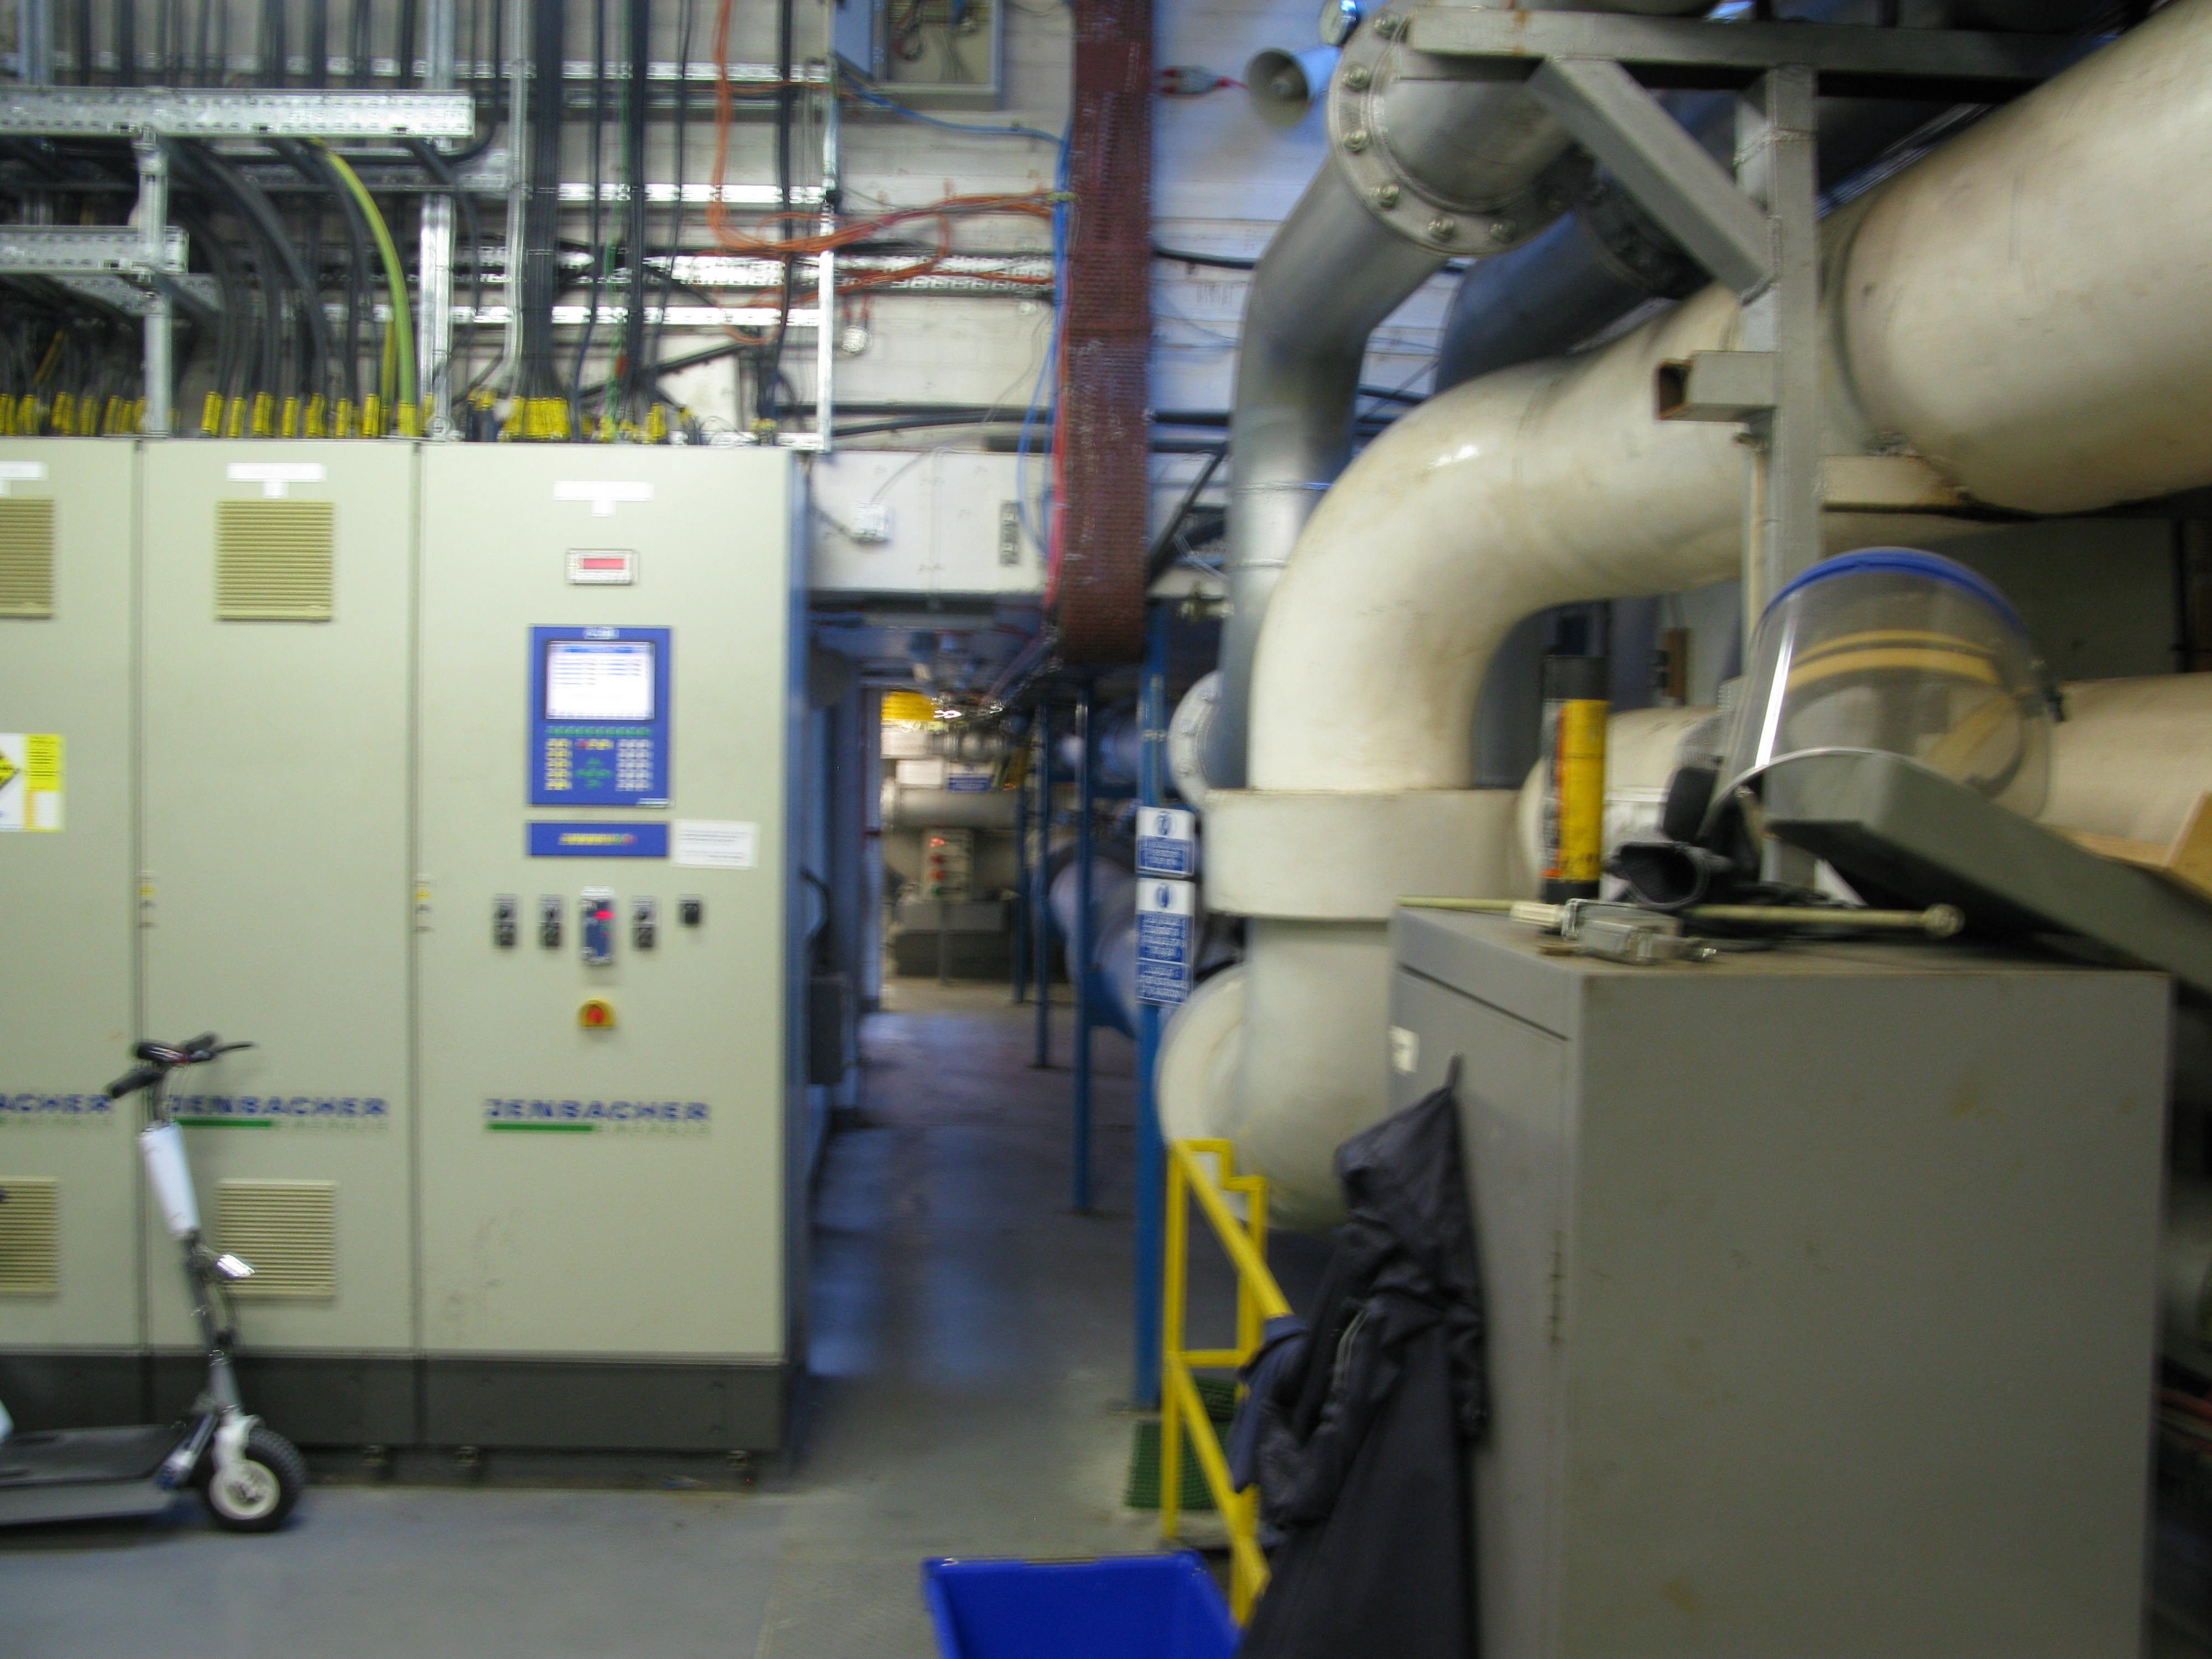 CHP control panels and Chilled Water mains